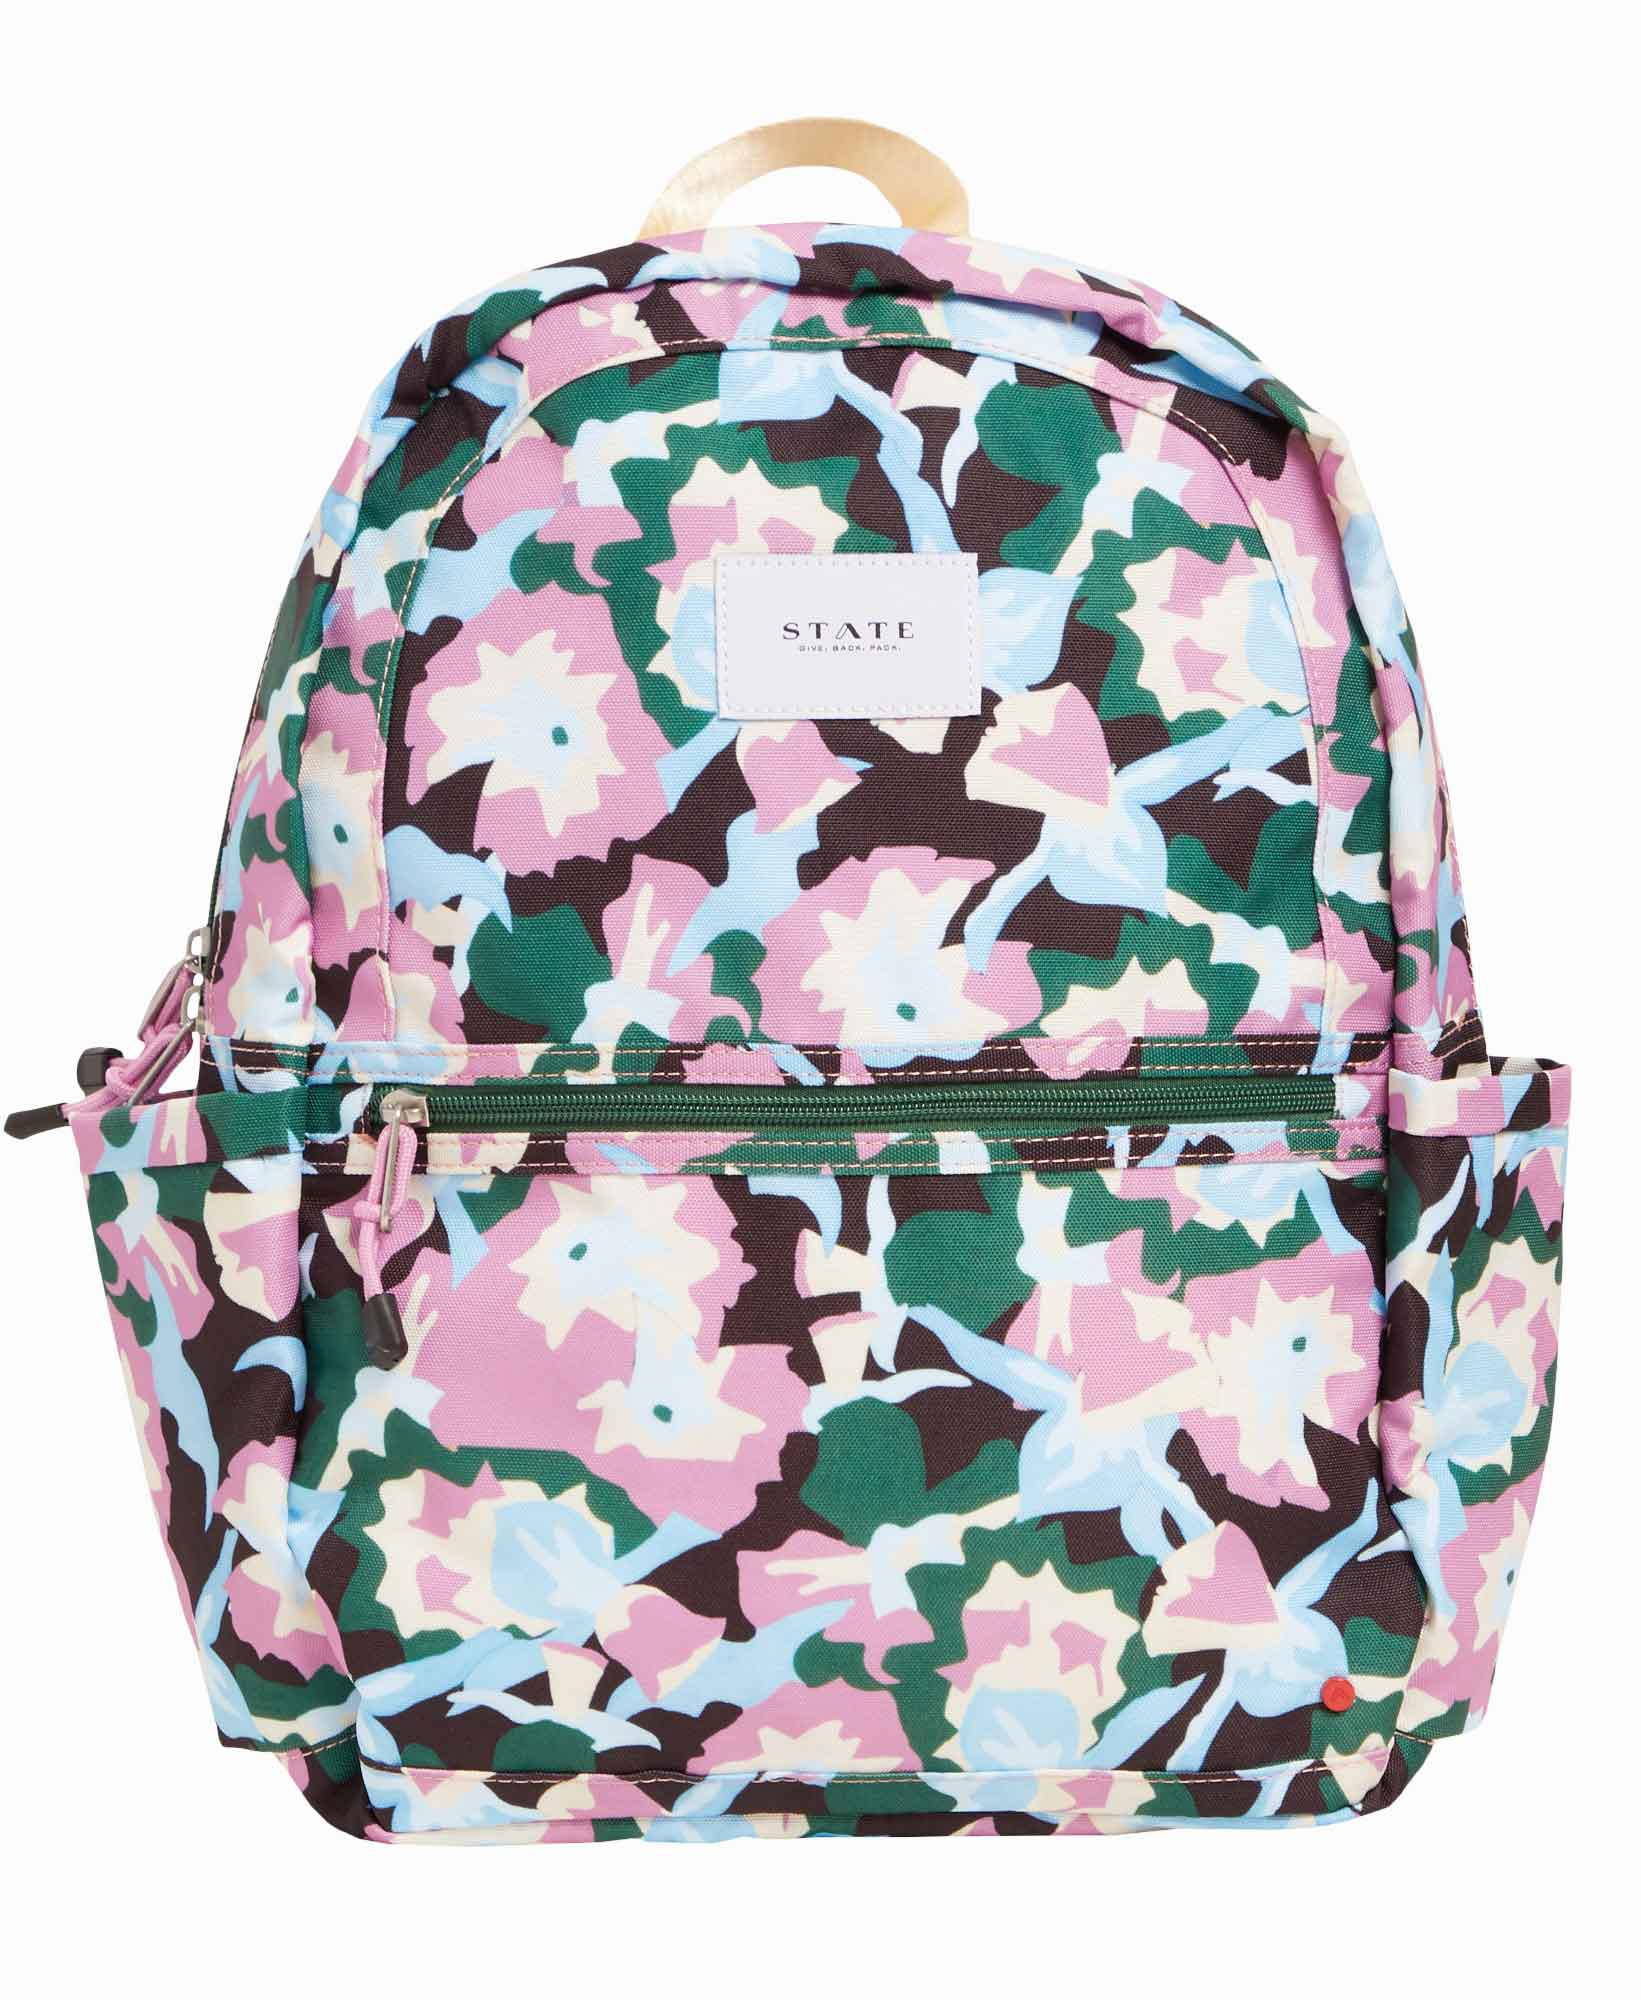 State Kane Camo Flower Backpack